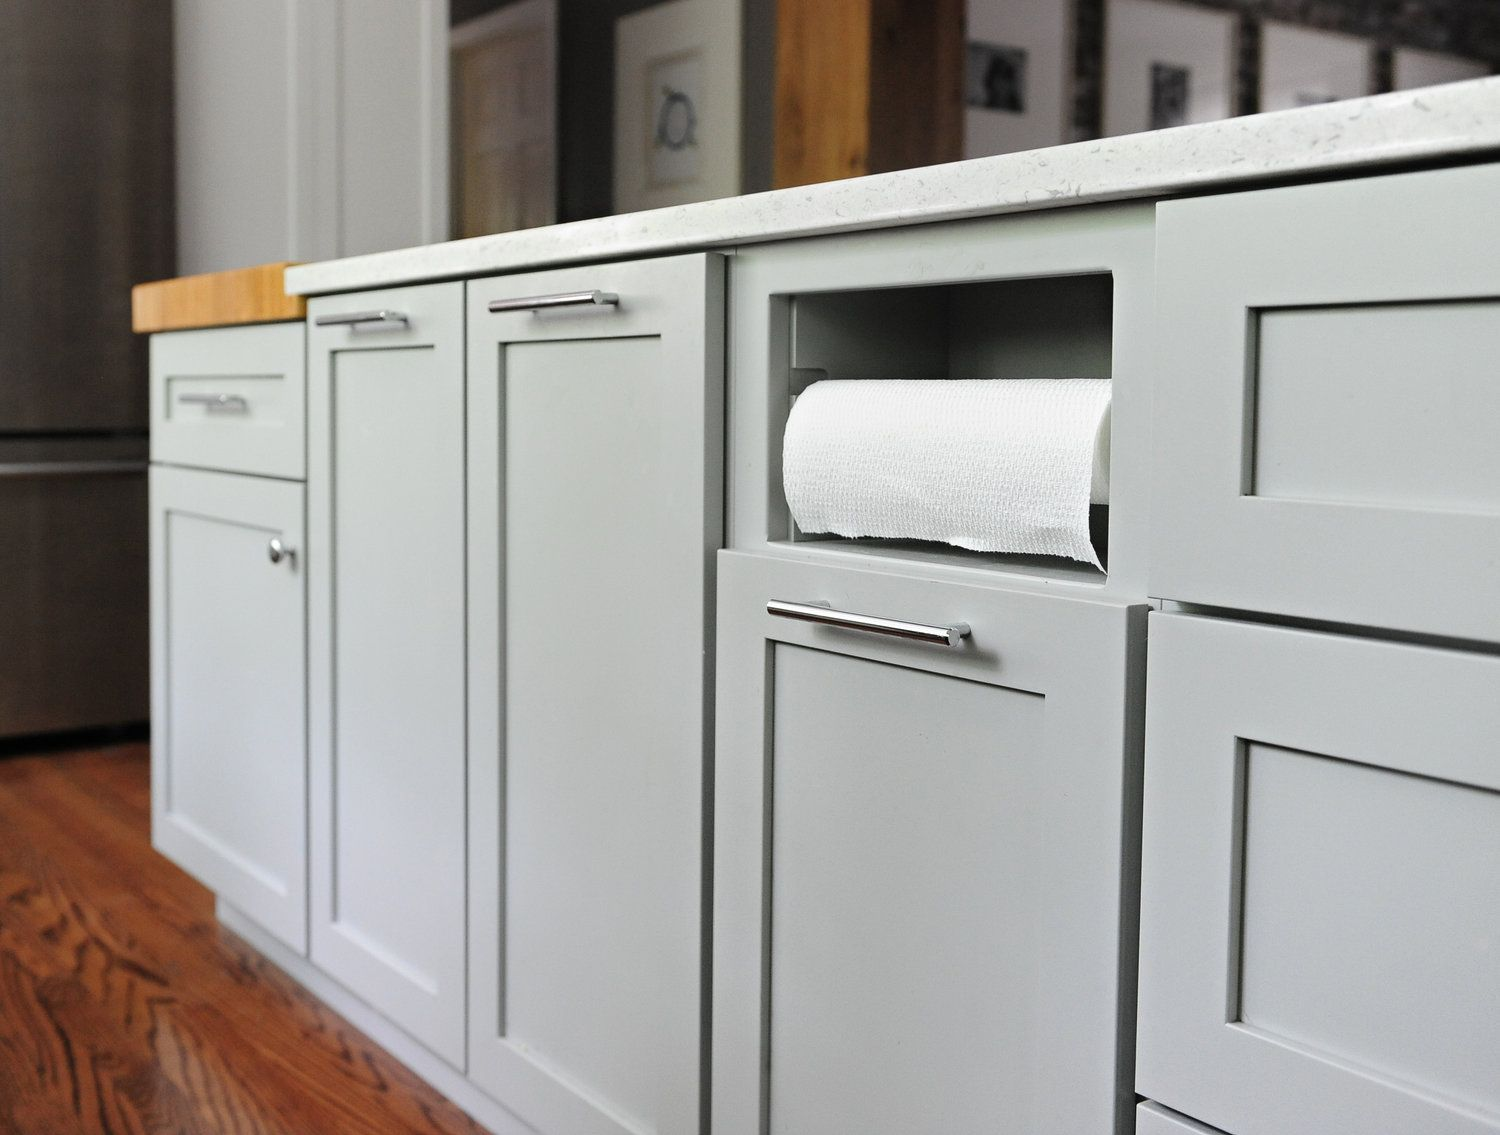 Cabinets By Stolls Woodworking Designed By Syi Island Color Sherwin Williams Chelsea Gray 2850 Kitchen Cabinet Styles Home Knock Down Wall